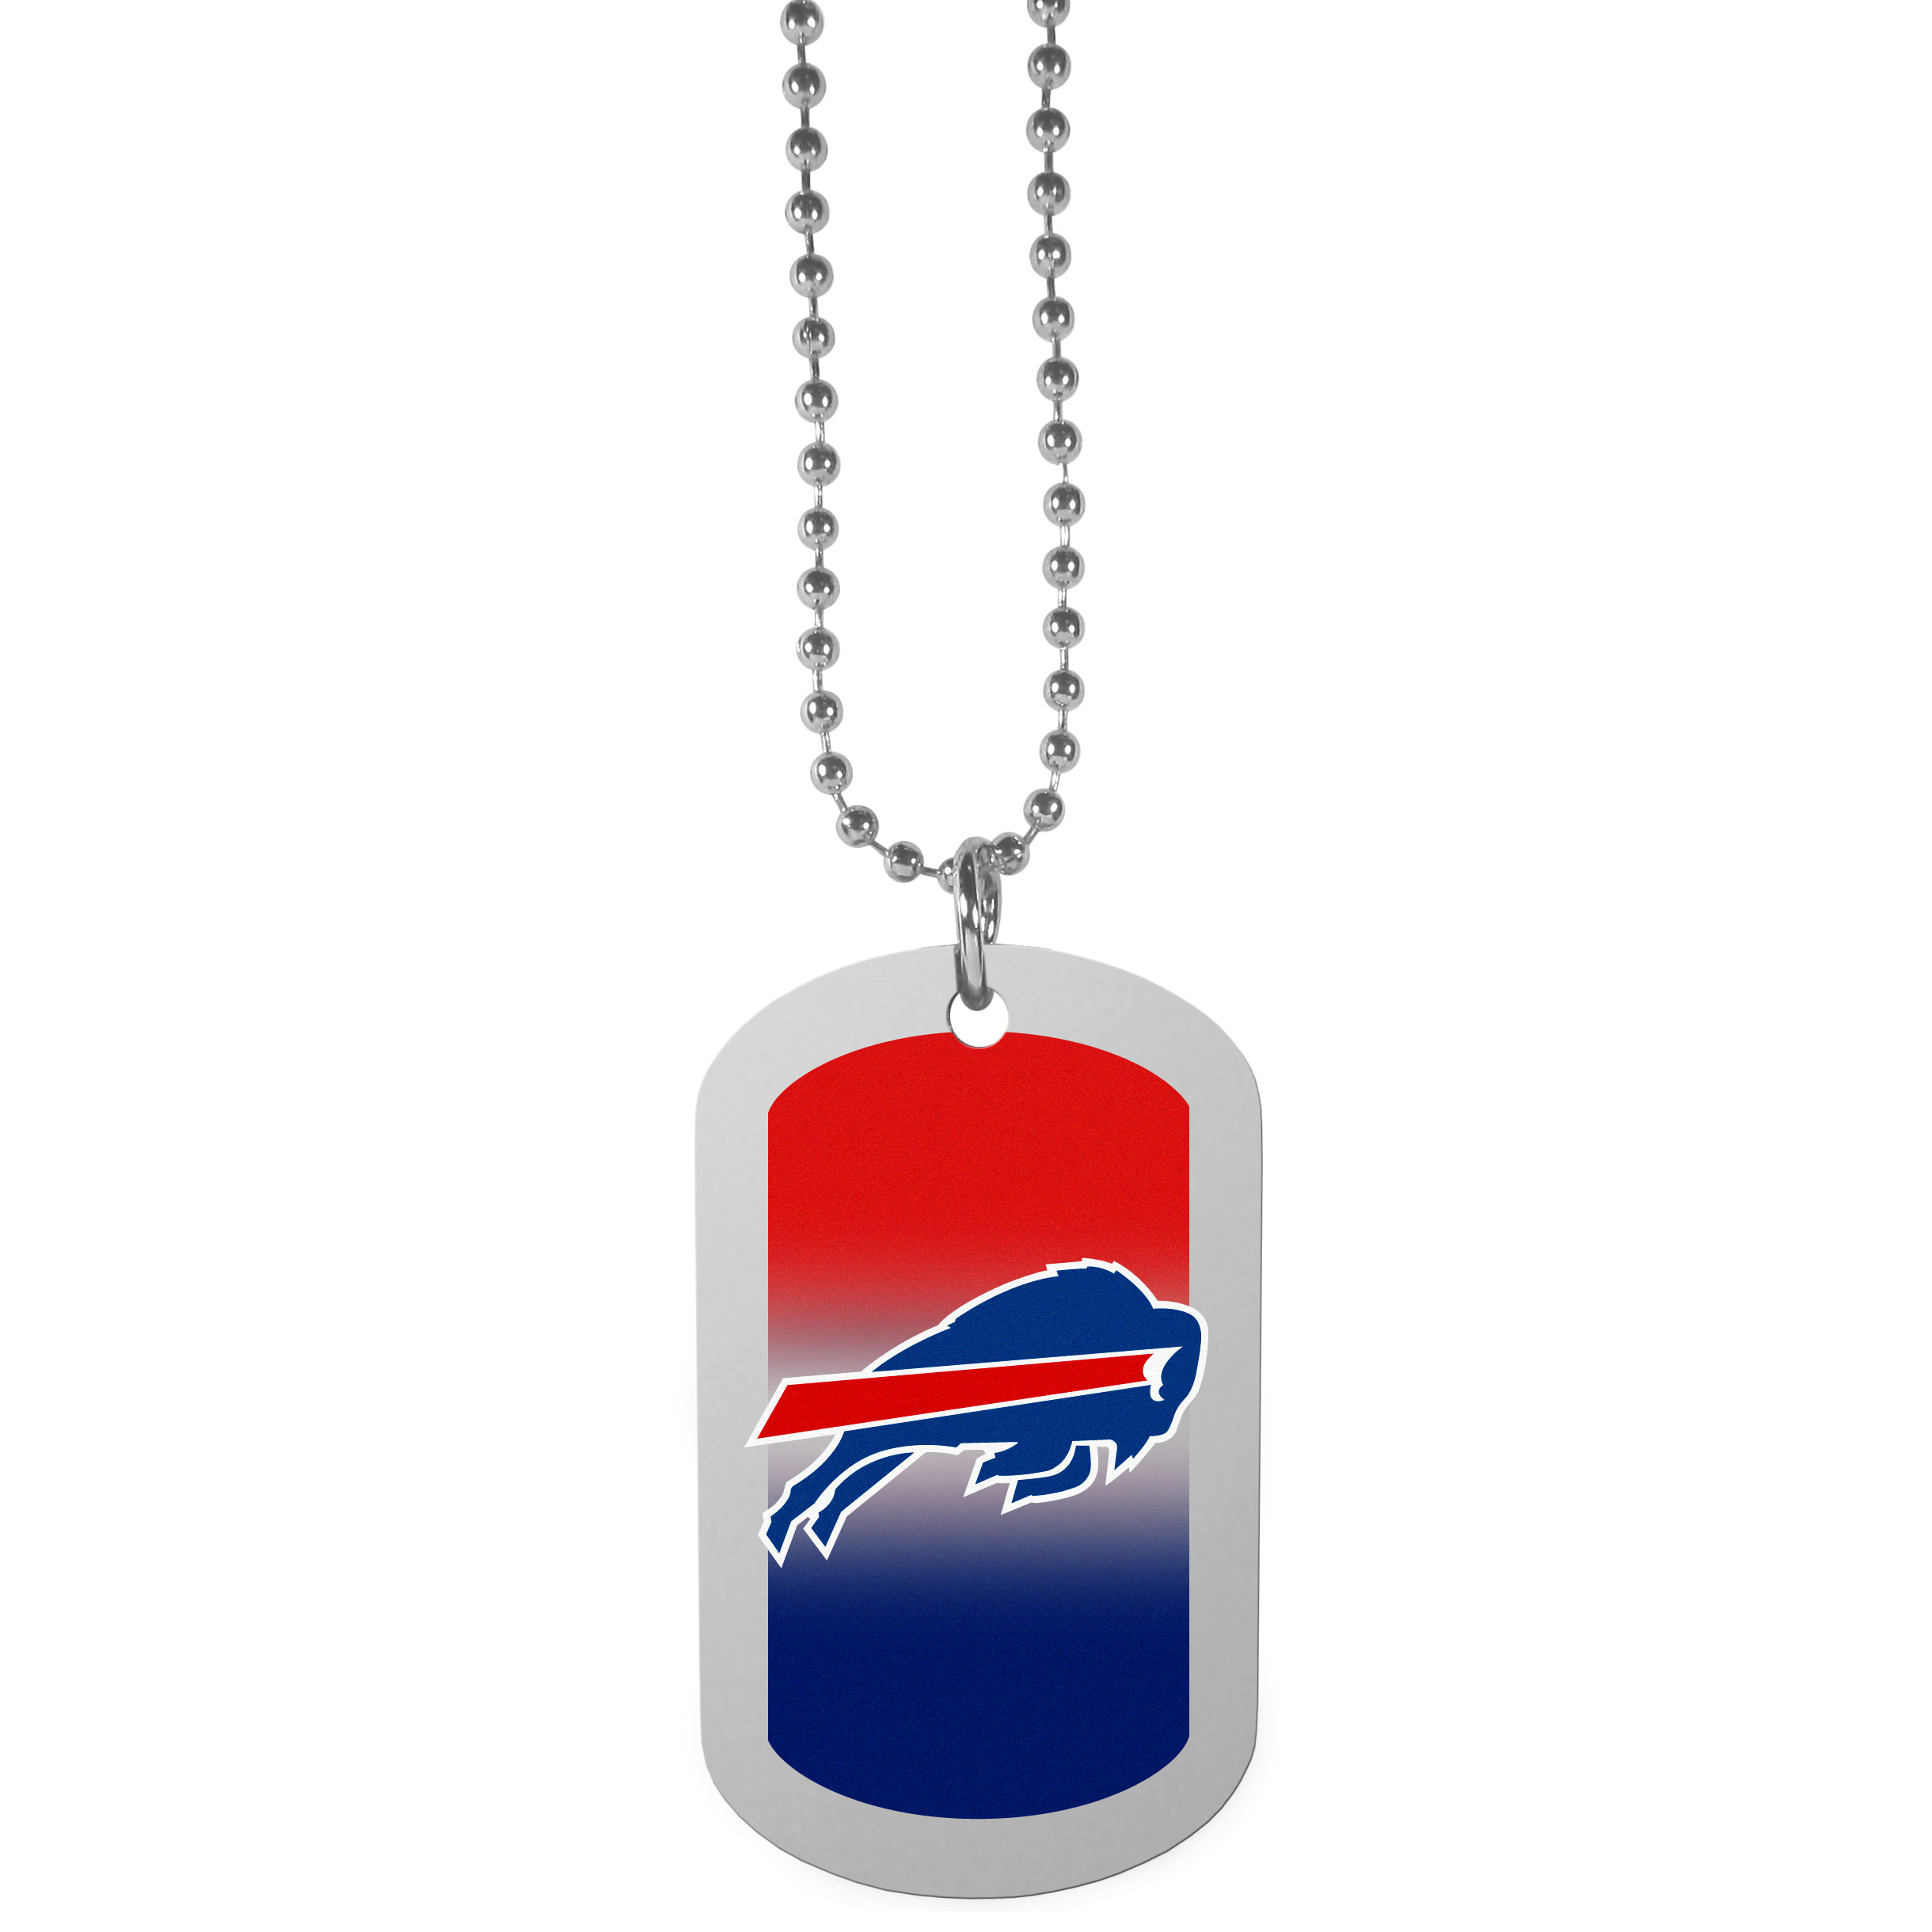 Buffalo Bills Team Tag Necklace - Dog tag necklaces are a fashion statement that is here to stay. The sporty version of the classic tag features a gradient print in team colors featuring a full color team logo over a high polish tag to create a bold and sporty look. The tag comes on a 26 inch ball chain with a ball and joint clasp. Any Buffalo Bills would be proud to wear this attractive fashion accessory.